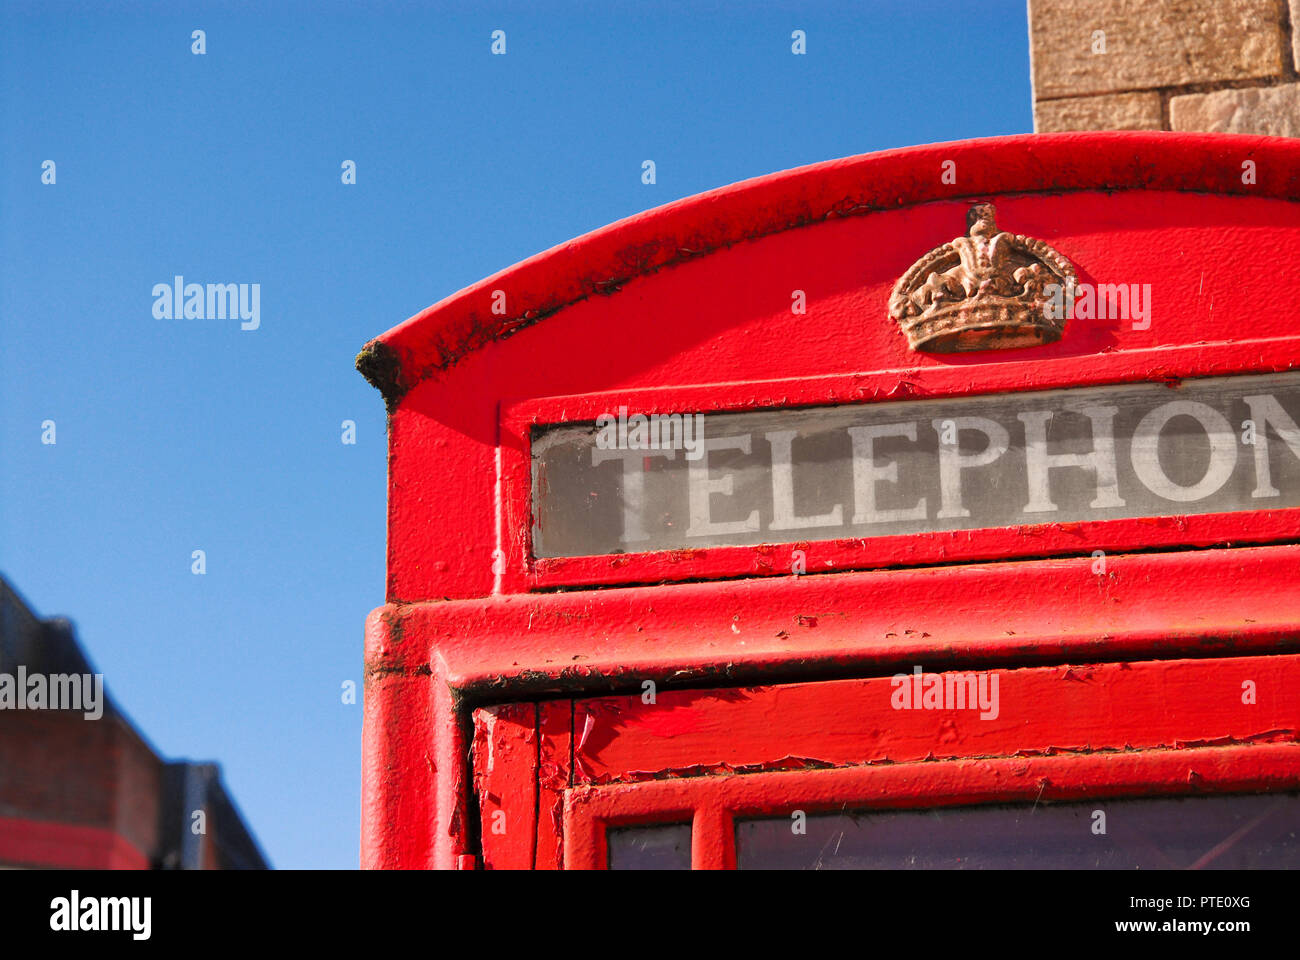 Dorchester. 9th October 2018. Traditional red telephone kiosk in sunny Dorchester, County town of Dorset Credit: stuart fretwell/Alamy Live News - Stock Image